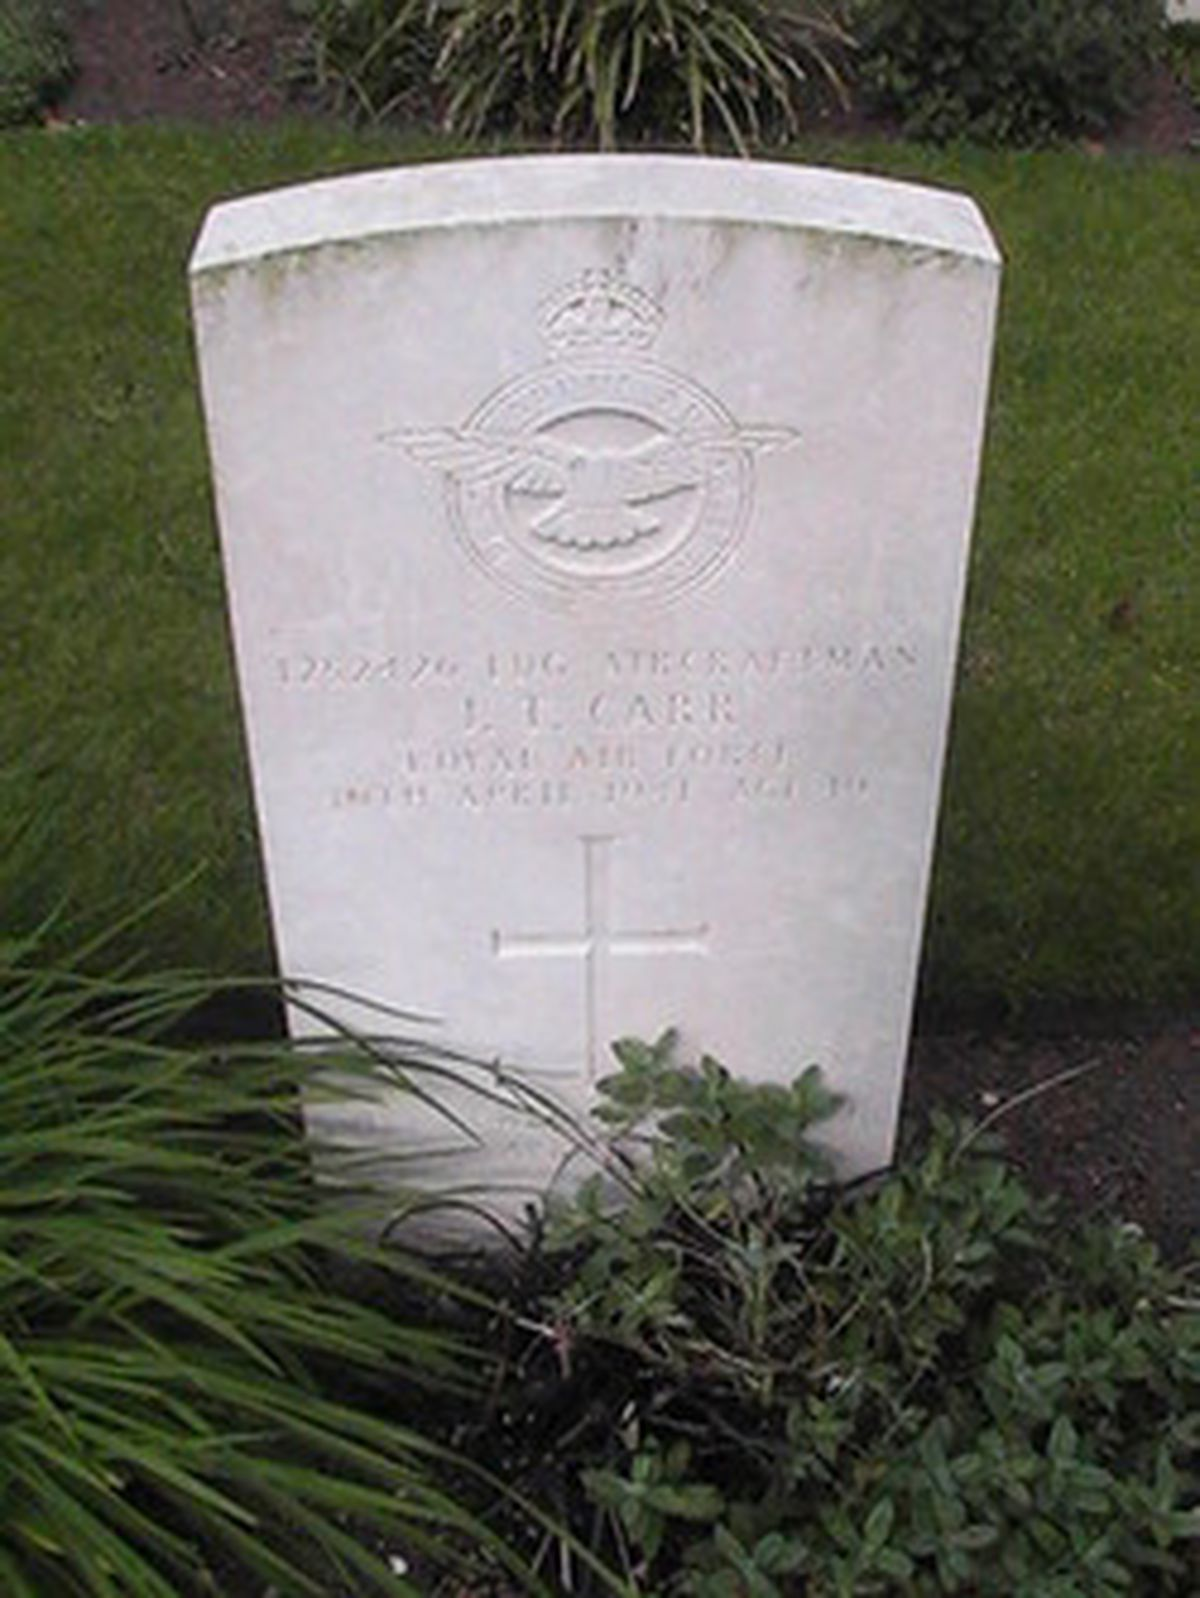 The grave of John Toplis Carr at Brookwood Military Cemetery.